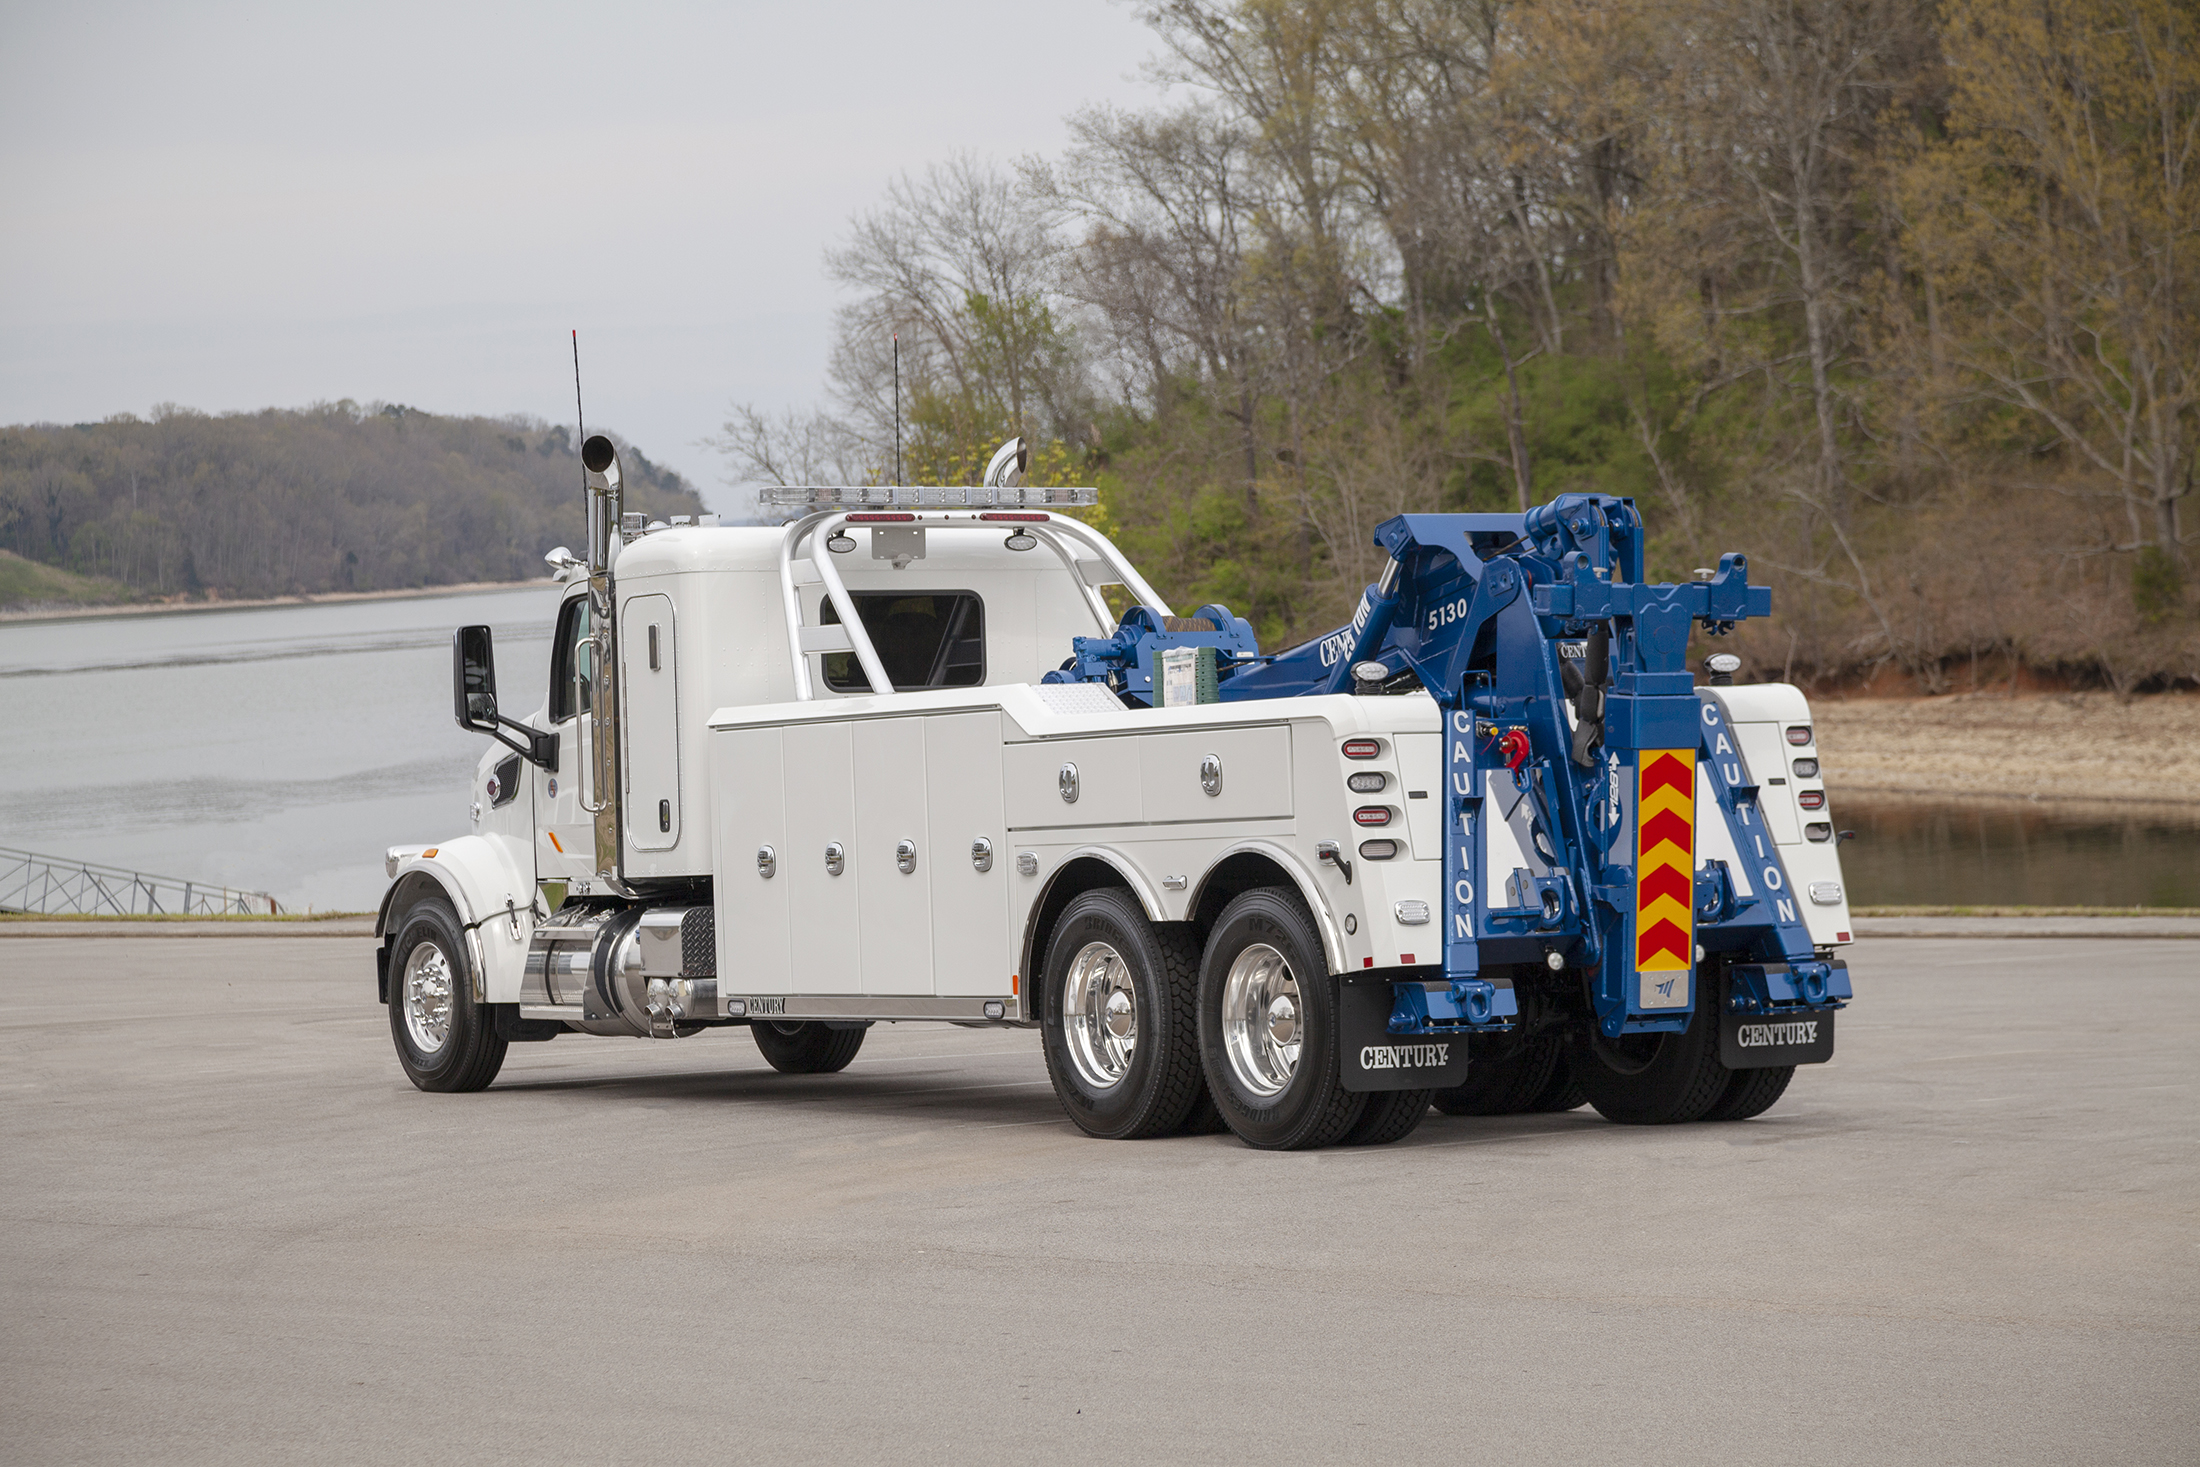 Century® 5130 Heavy-Duty Integrated Wrecker has superior weight-forward design for the best highway towing